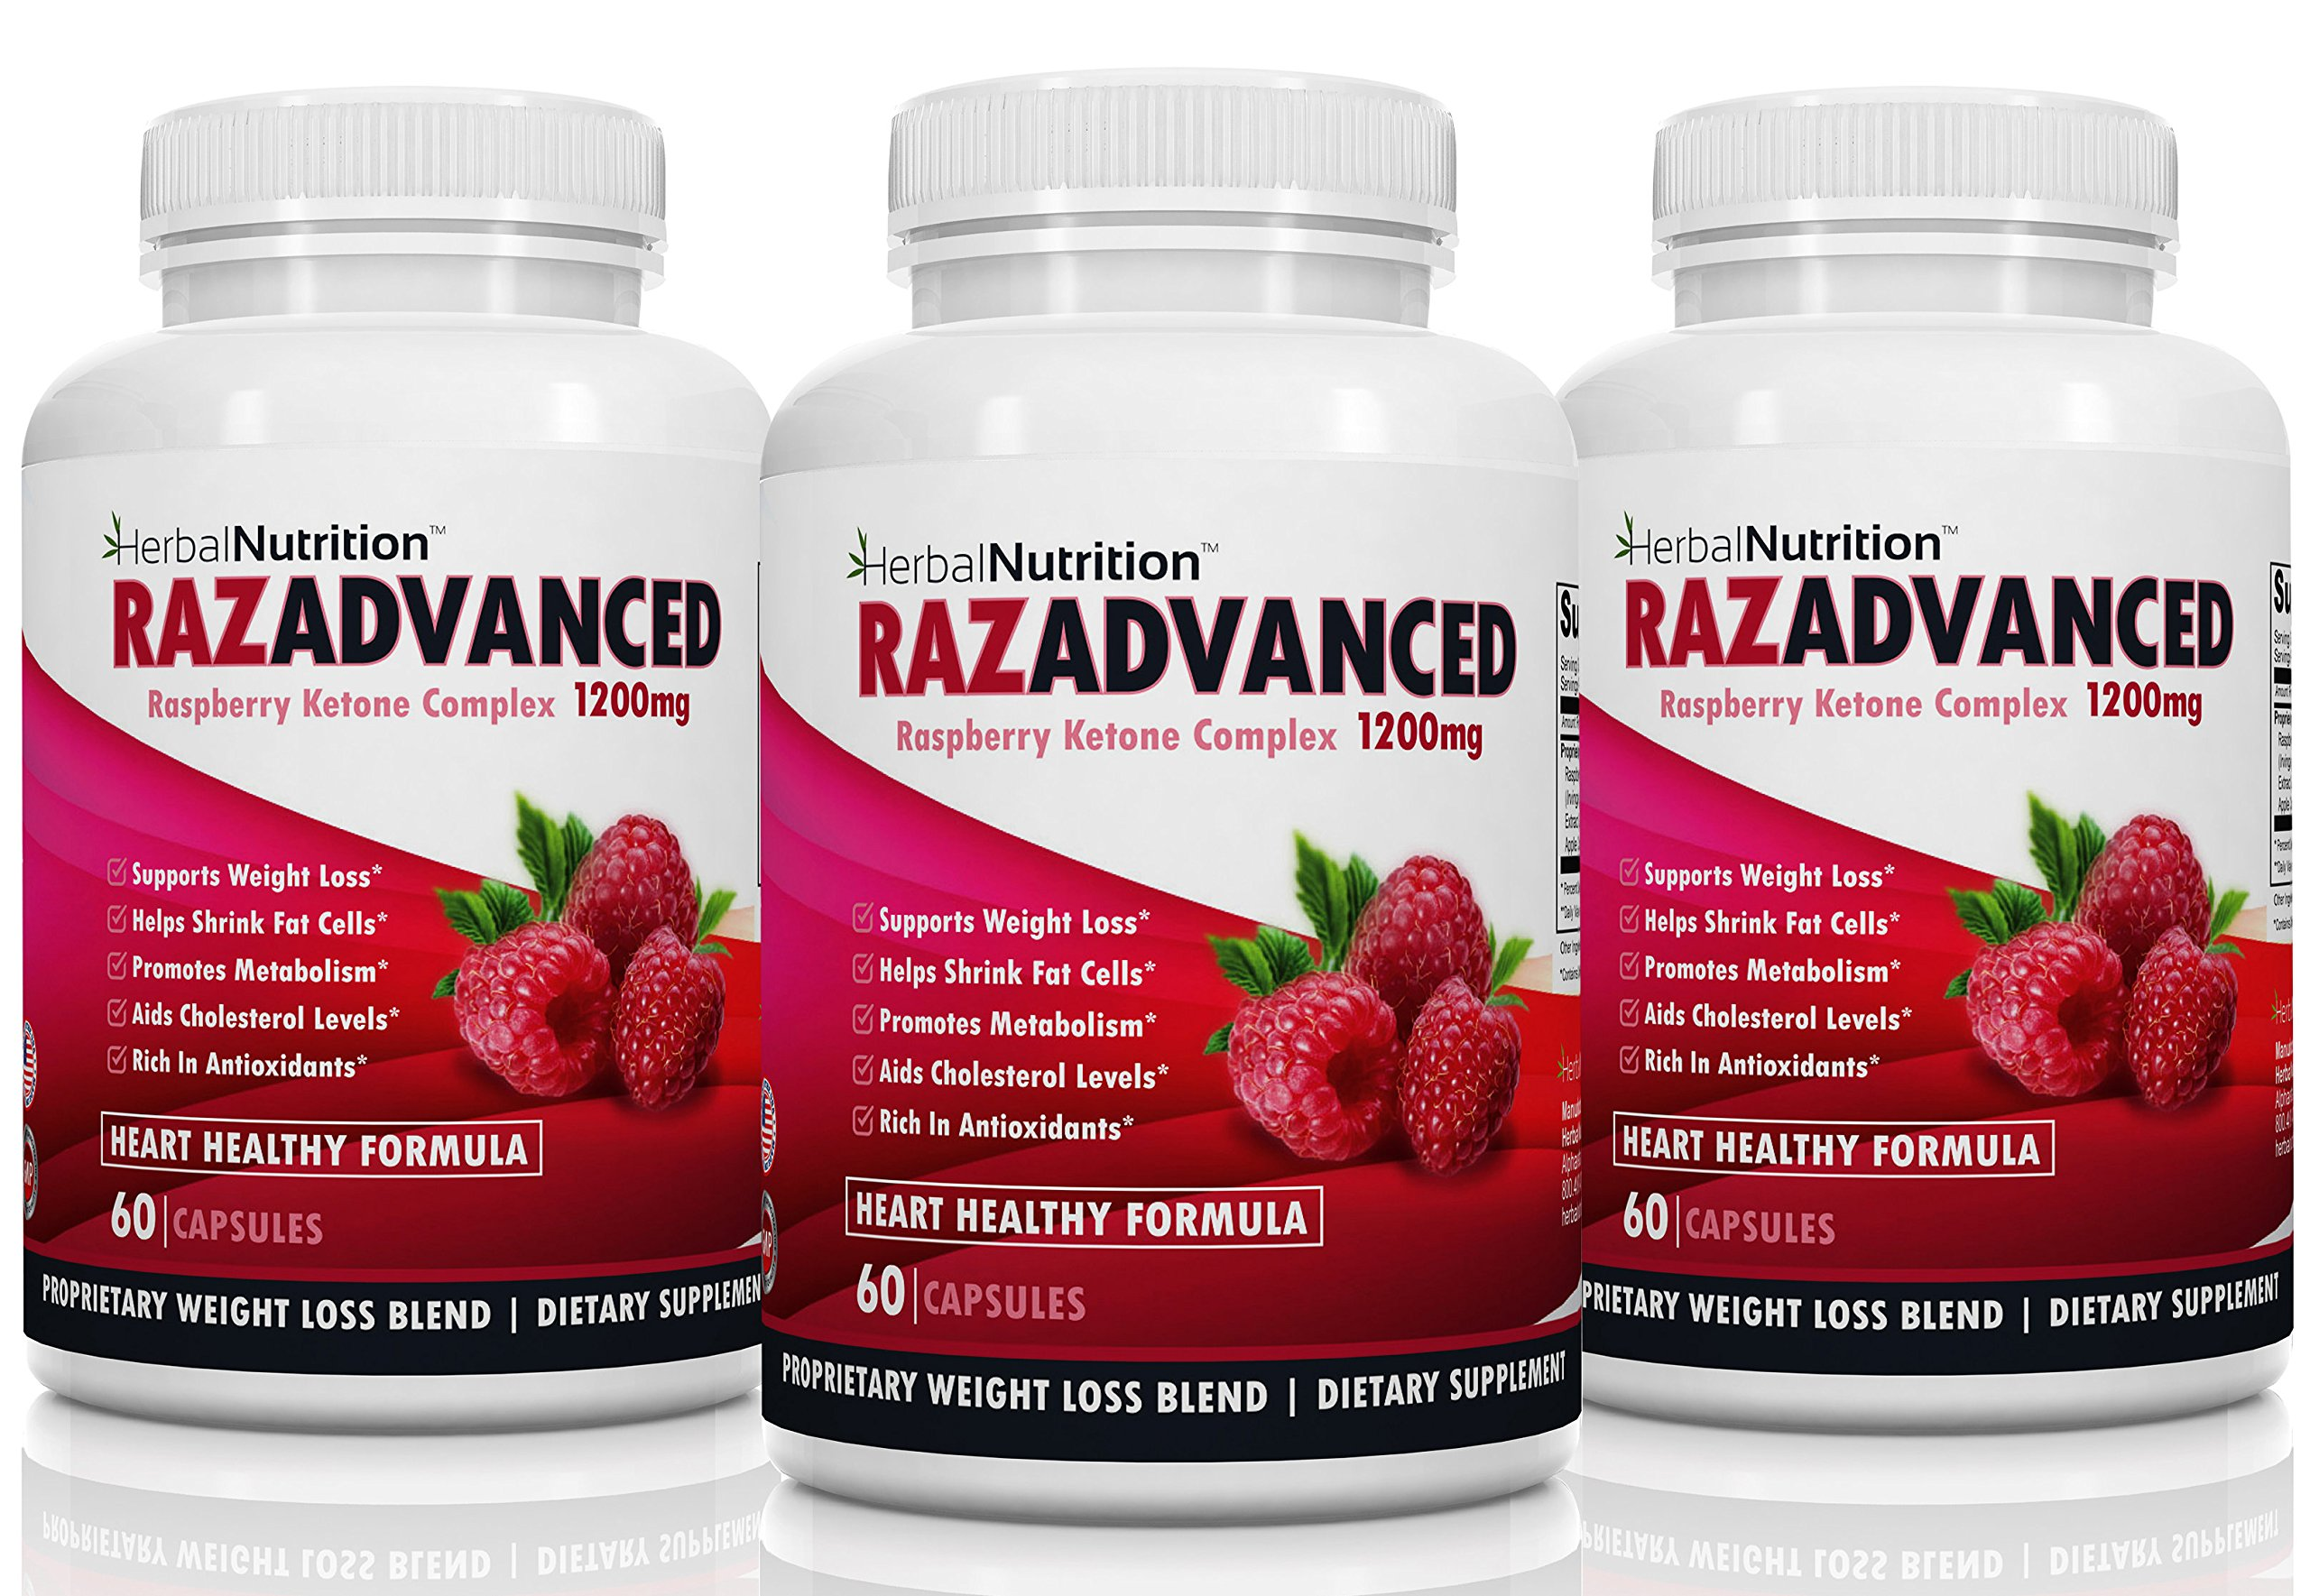 RazAdvanced Raspberry Ketones Complex Three Bottle Pack 80 Capsules 1200mg Per Serving All-Natural Veggie Caps Helps Burn Fat & Suppresses Appetite Super Antioxidant